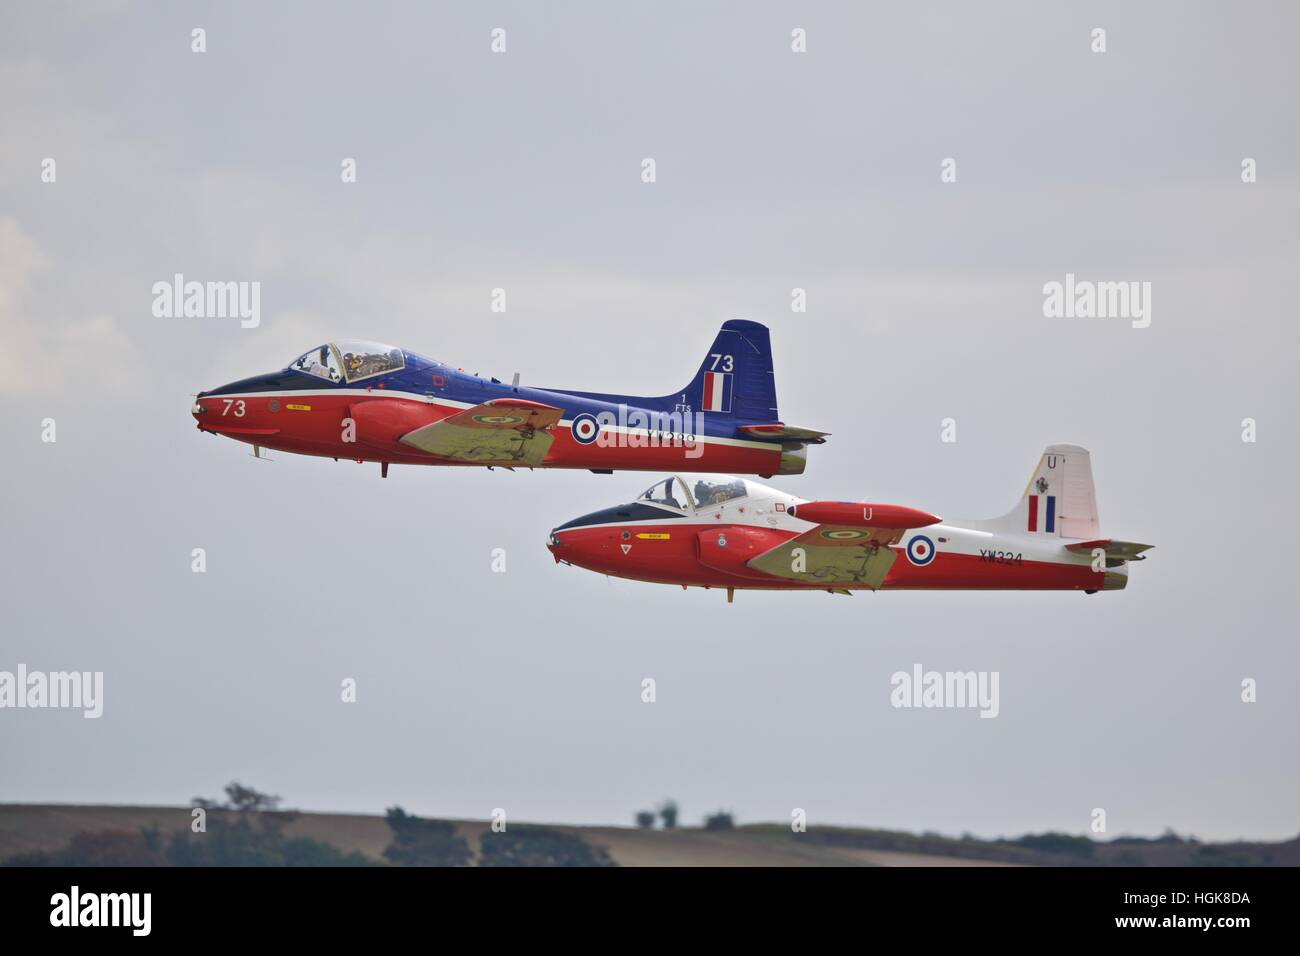 Two Jet Provost aircraft at IWM Duxford - Stock Image